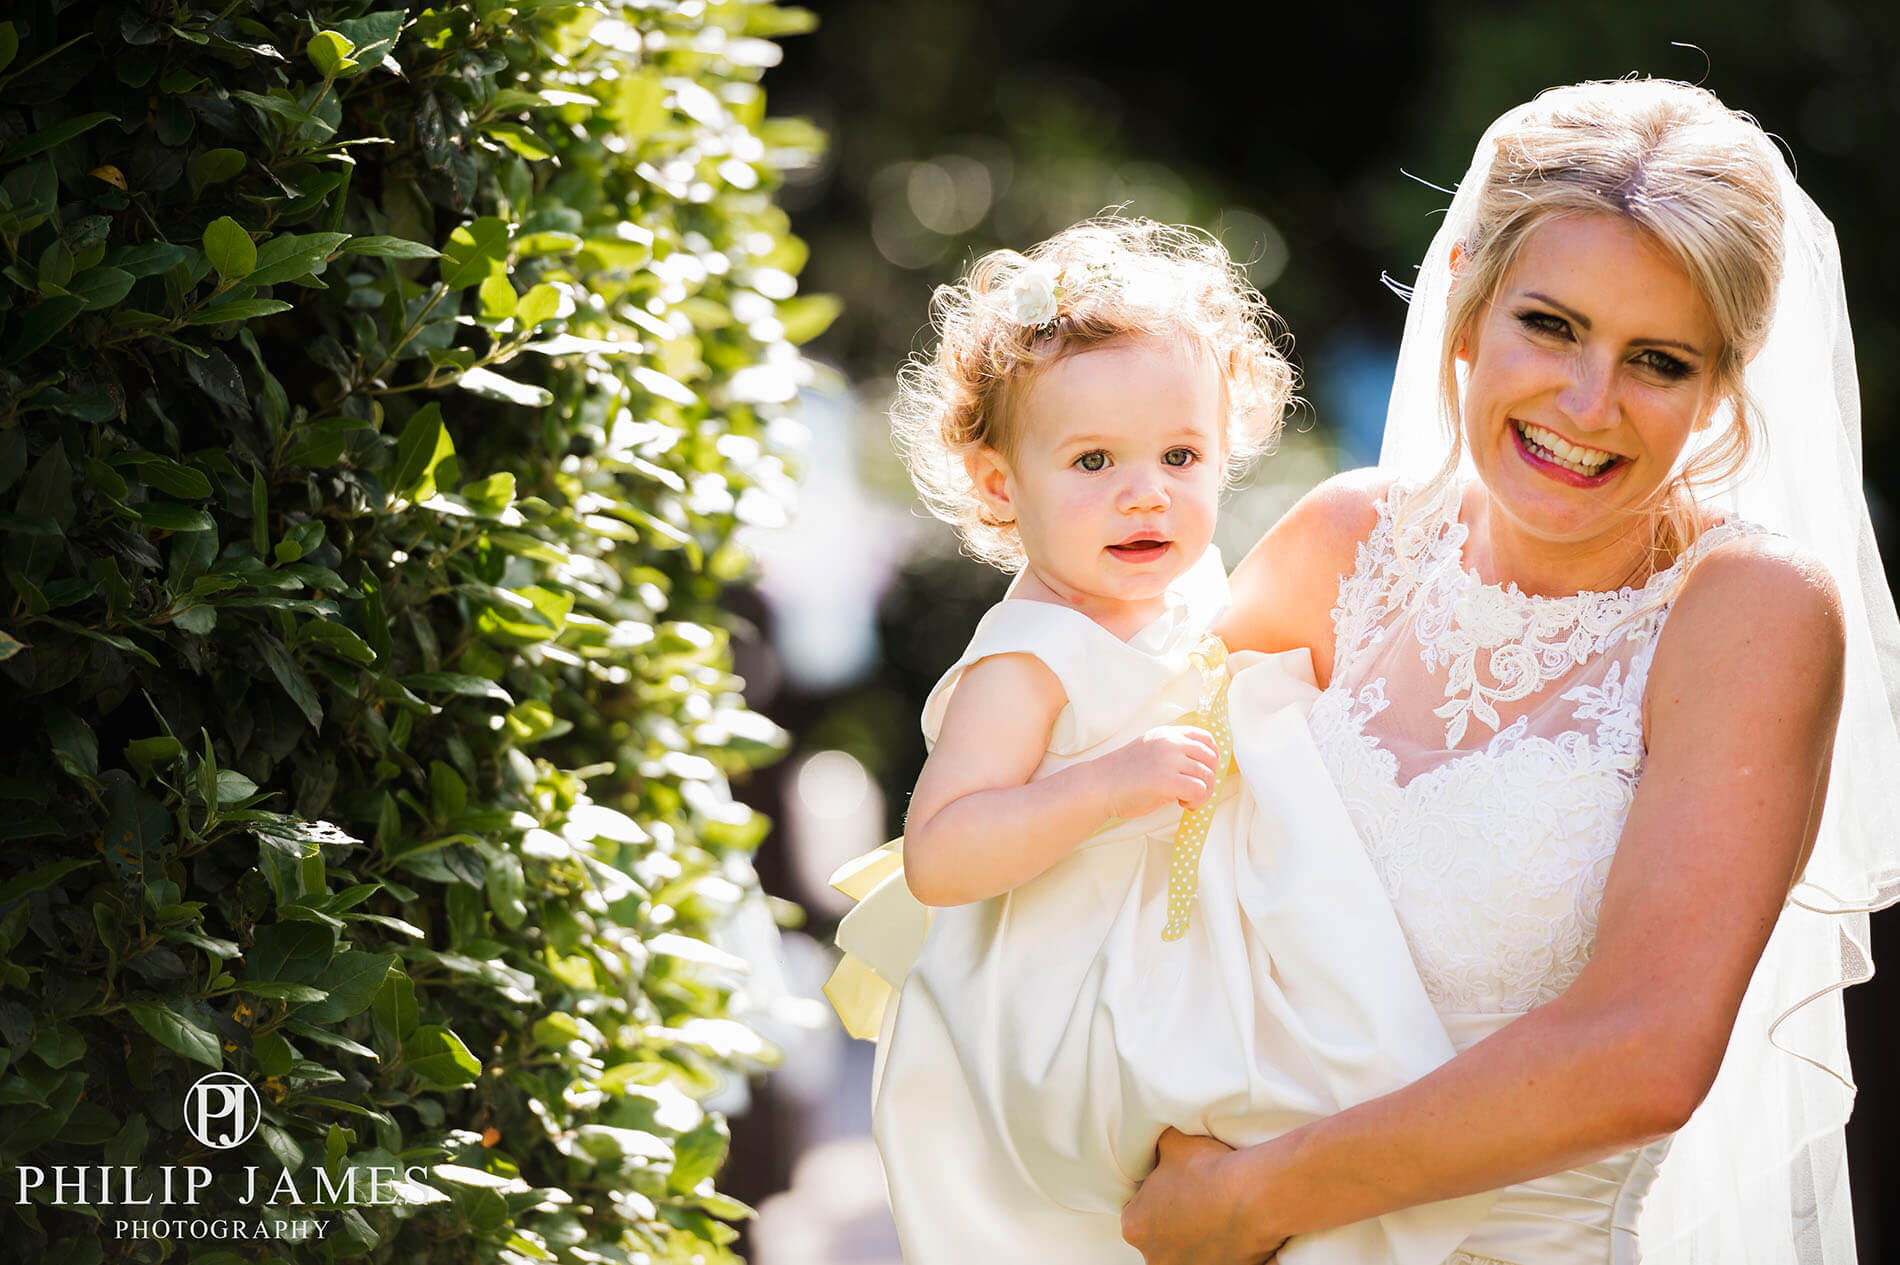 Philip James specializing in Wedding Photography Birmingham - Moments (141 of 170)